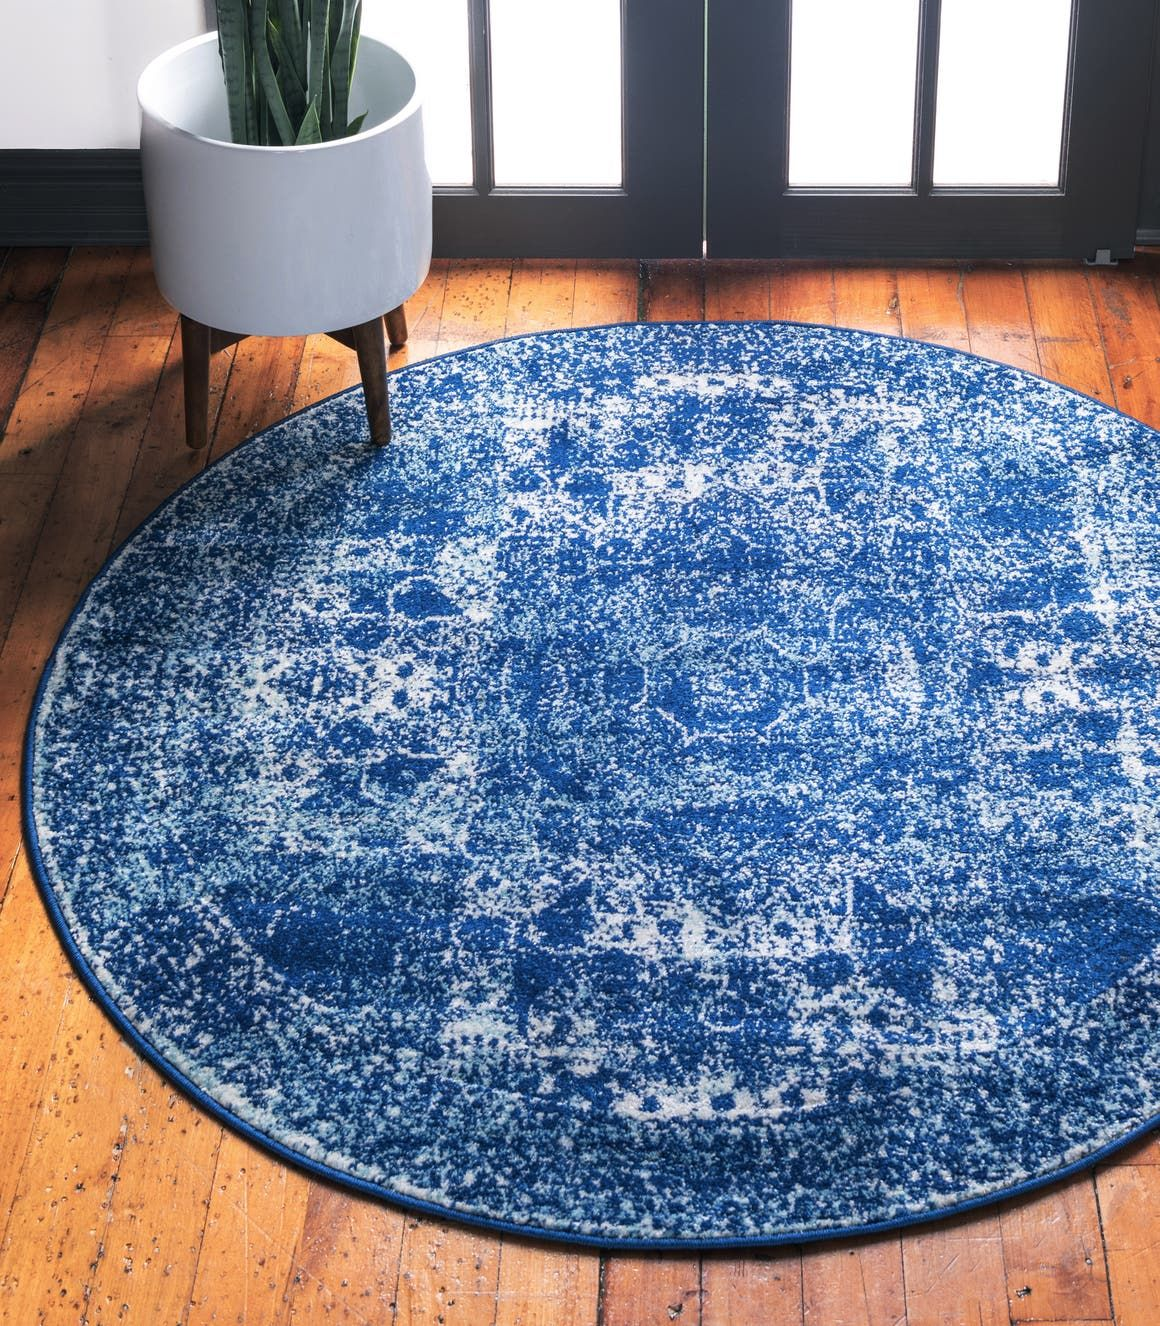 Navy Blue Bexley Area Rug (With images) Round rugs